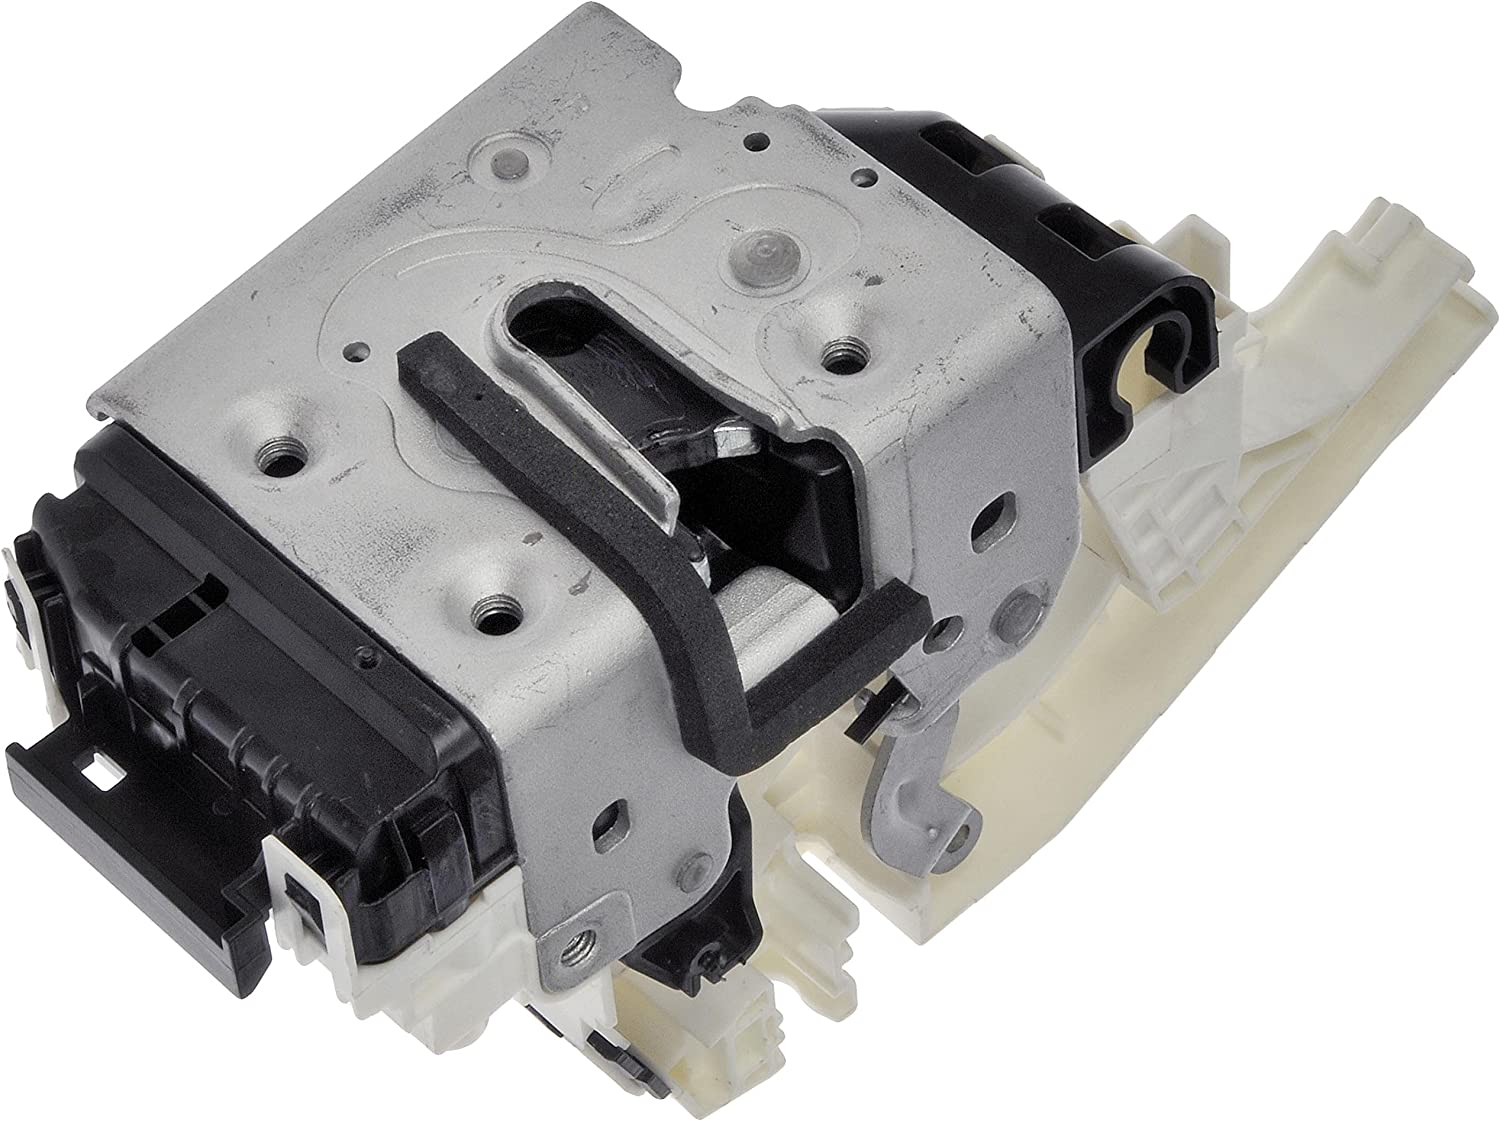 Dorman 931-004 Door Lock Actuator Motor